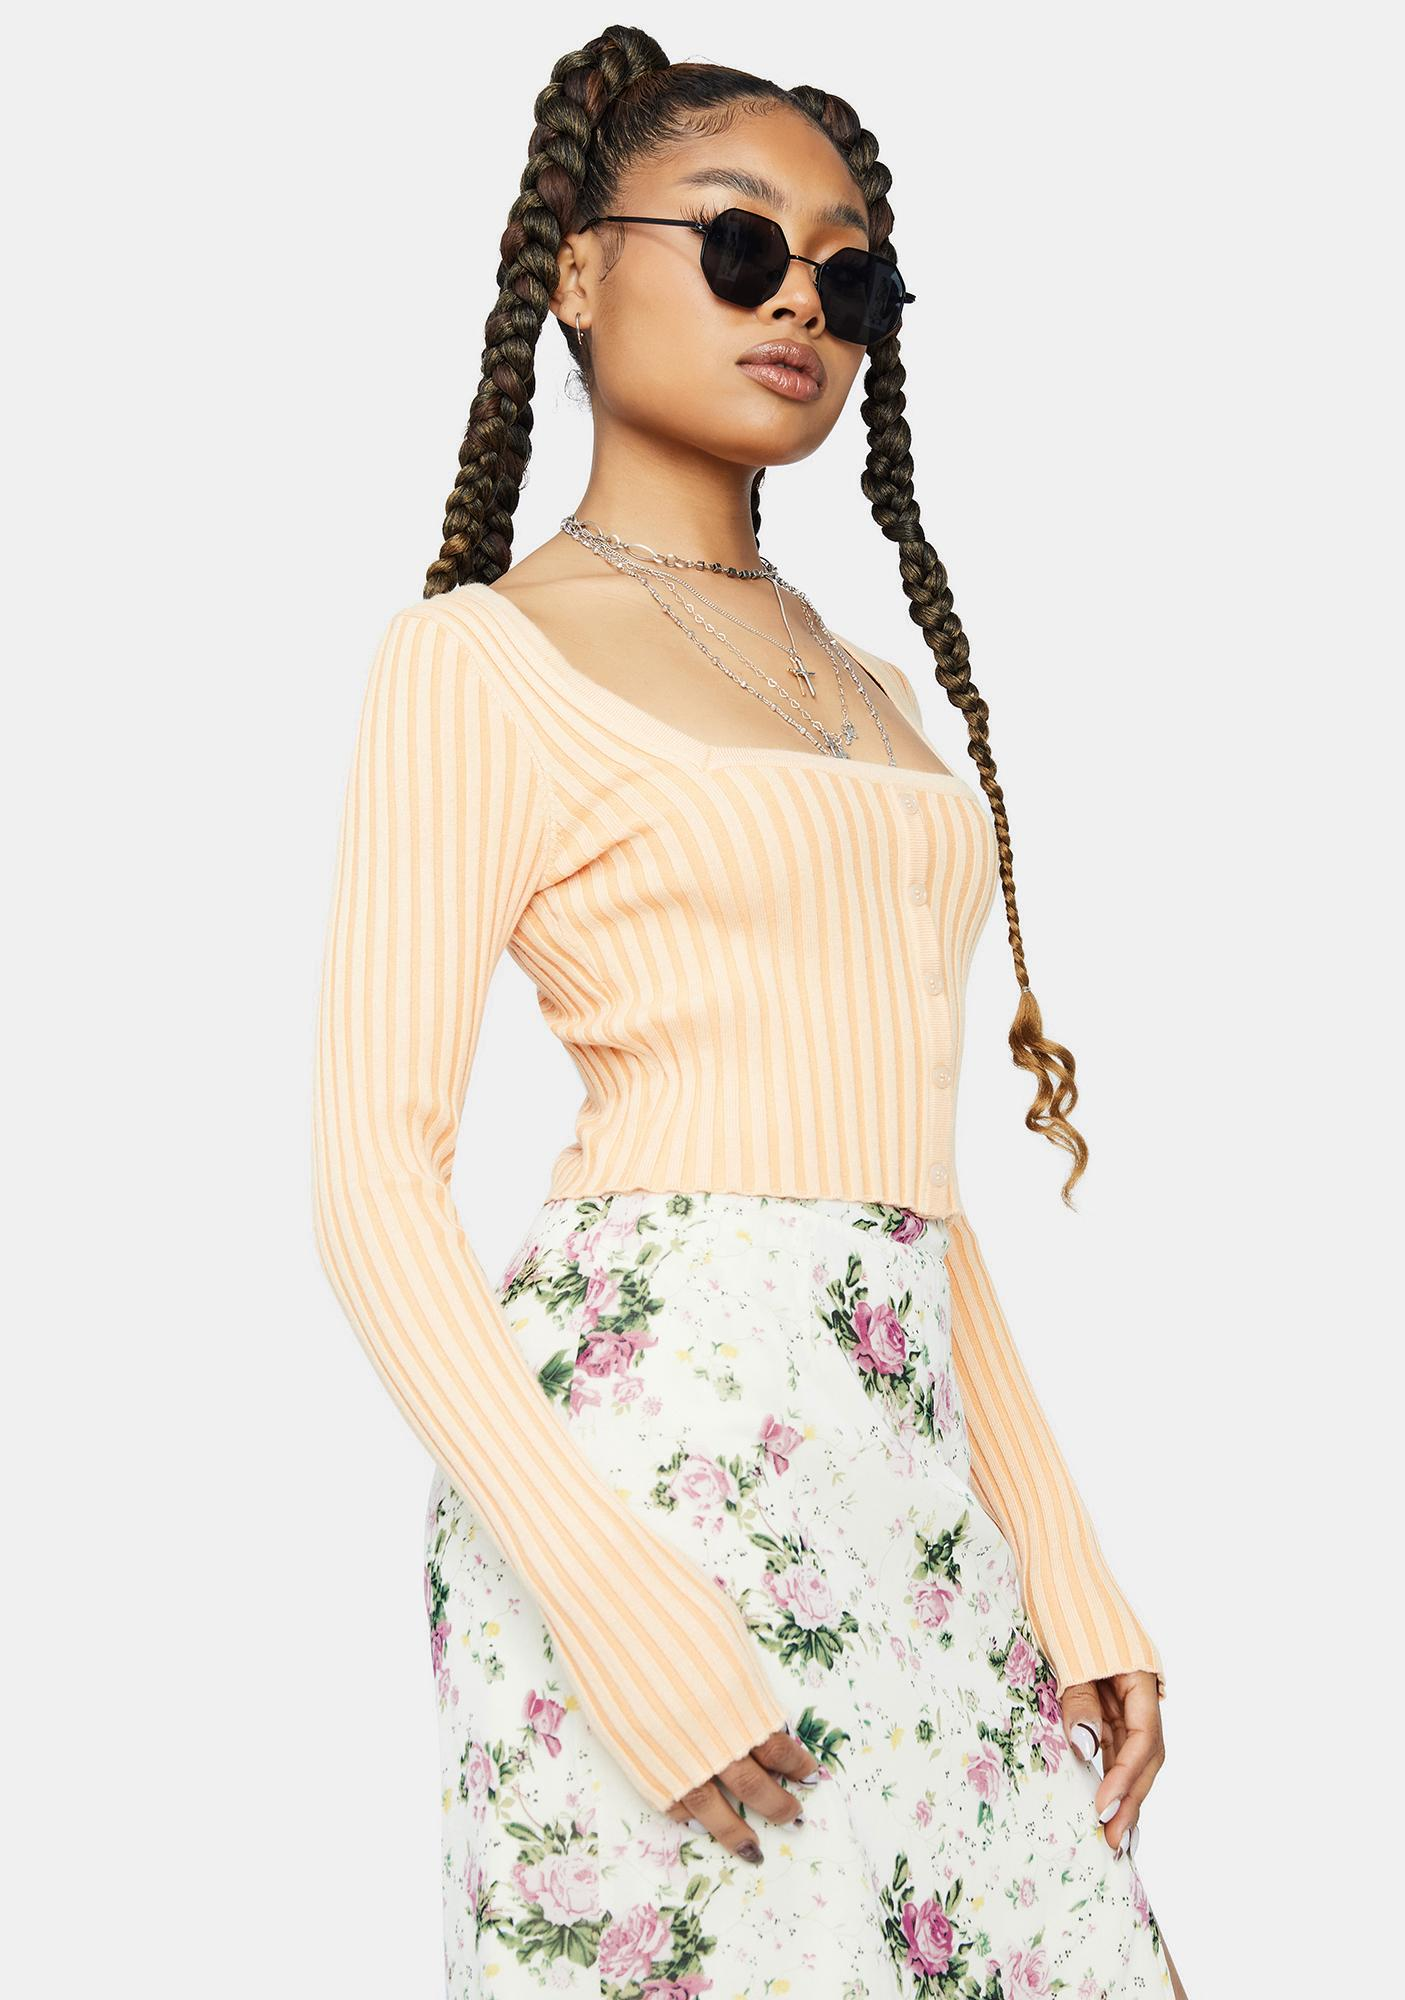 Sherbet Loyal Sweetie Button Up Crop Top